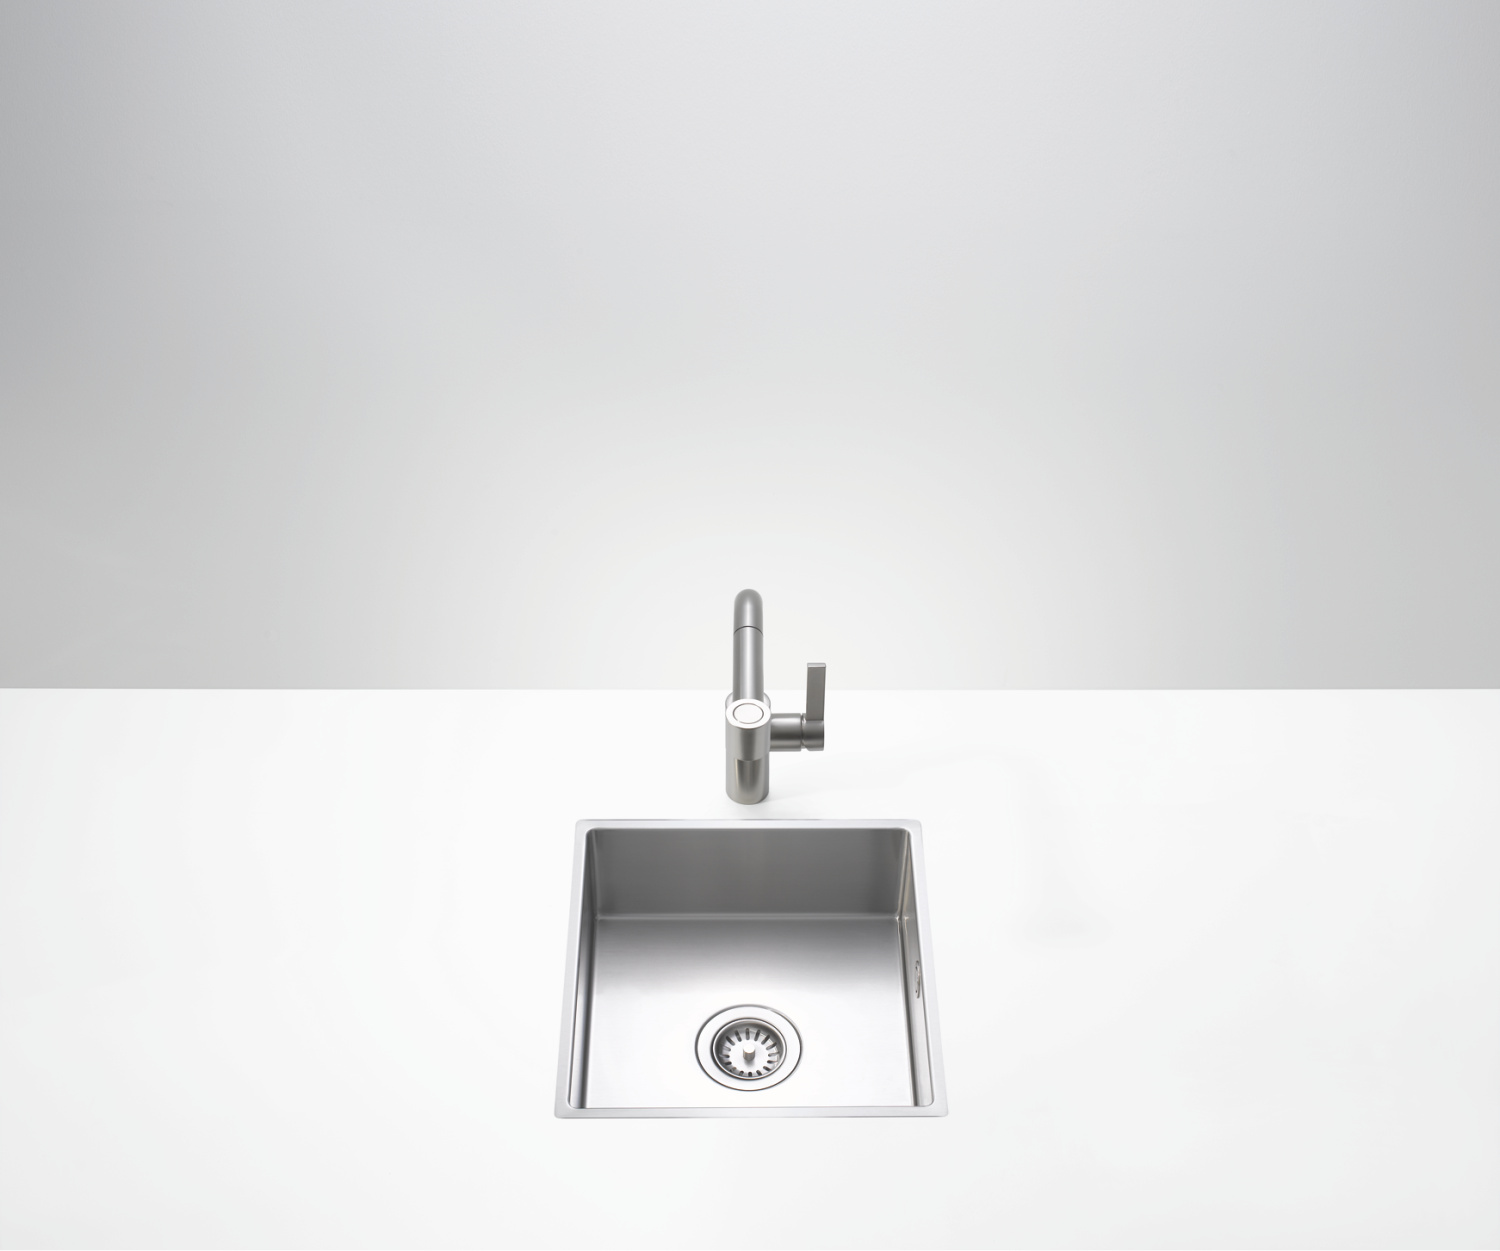 Single bowl sink - matte stainless steel - 38 041 000-86